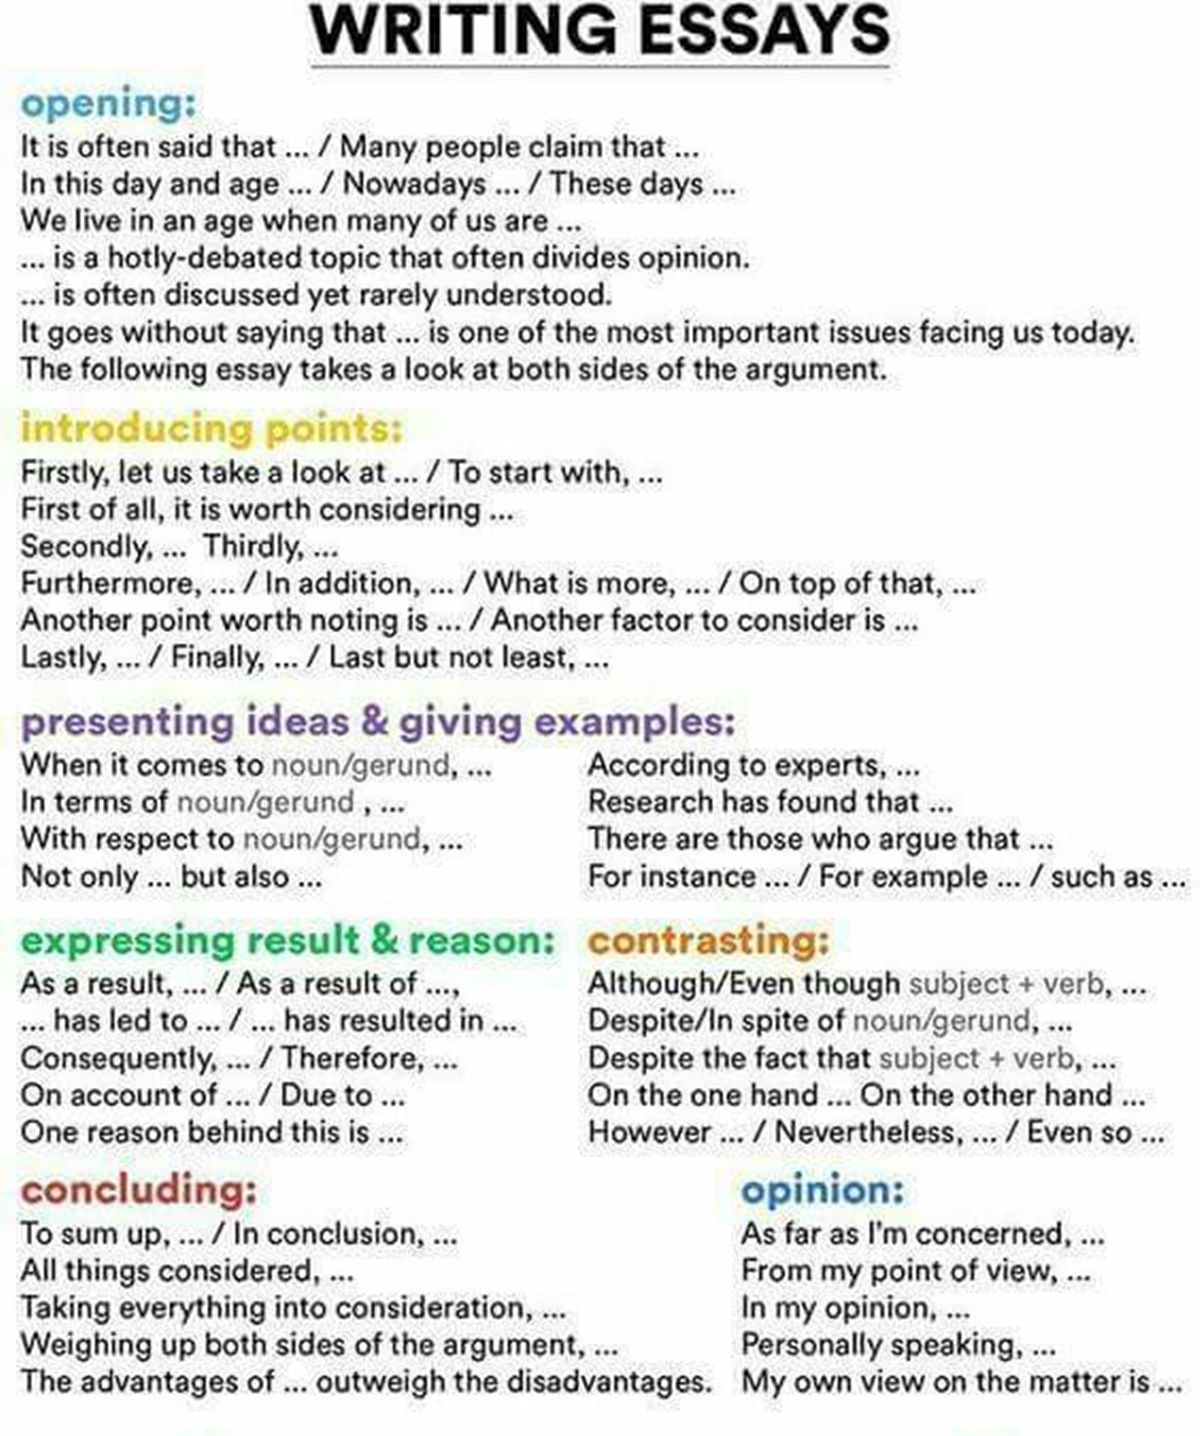 Pin By Chell Rodica On Learn English  Essay Writing Skills Essay  Pin By Chell Rodica On Learn English  Essay Writing Skills Essay Writing  Tips English Writing